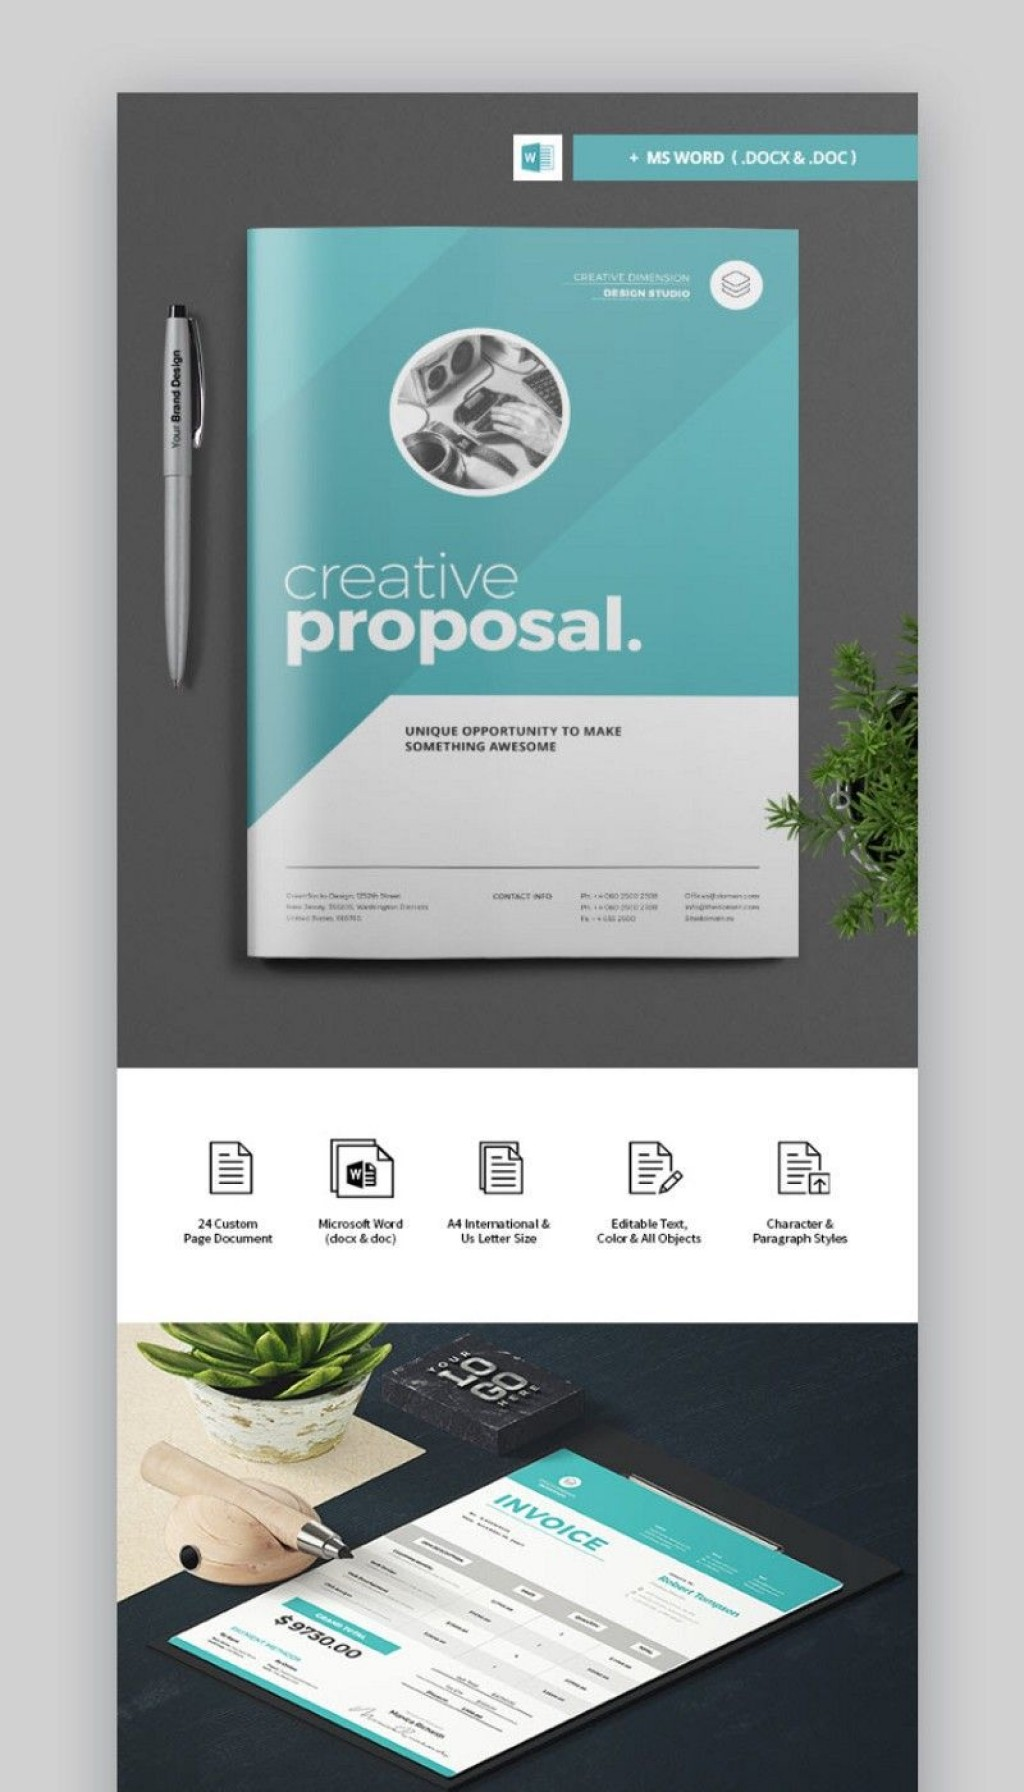 003 Imposing Microsoft Word Proposal Template Free High Def  Project Download BudgetLarge